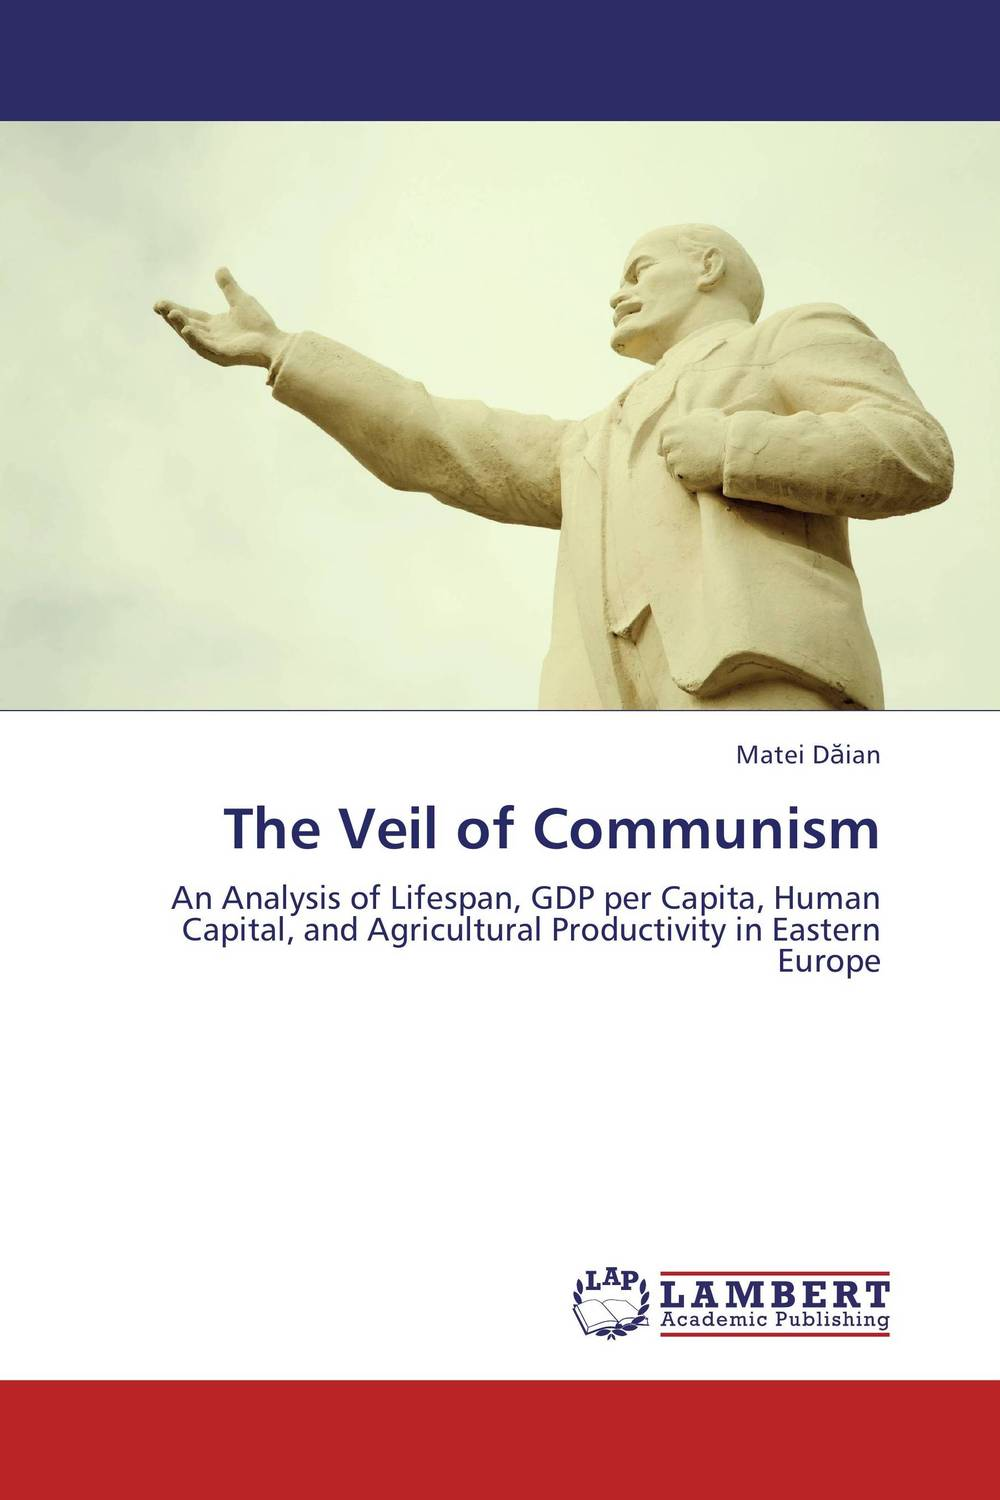 an analysis of the effects of communism in eastern europe